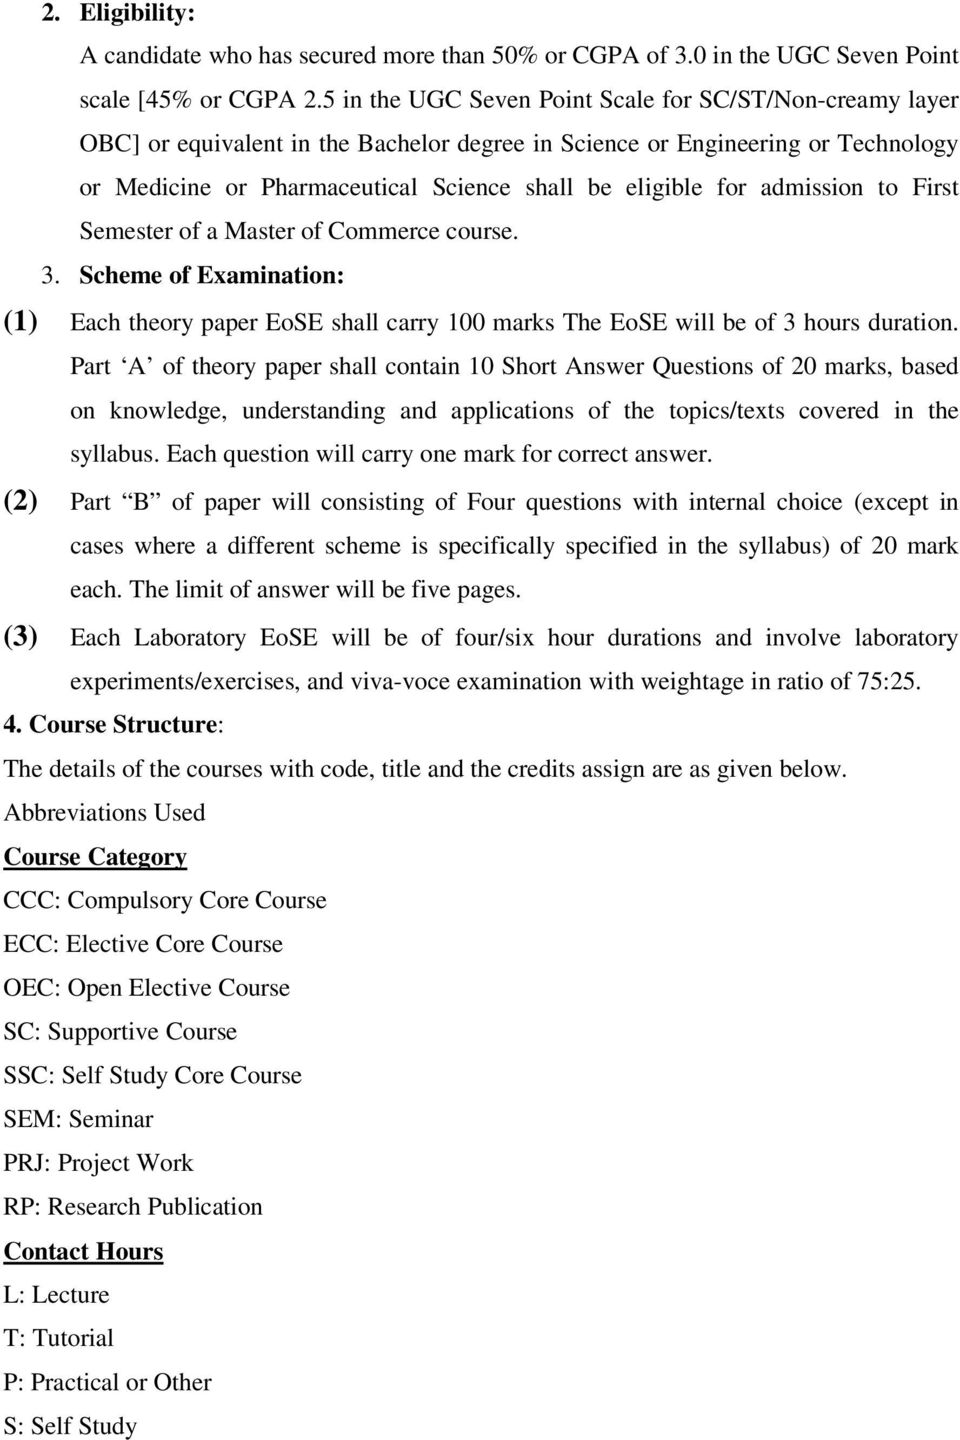 admission to First Semester of a Master of Commerce course. 3. Scheme of Examination: (1) Each theory paper EoSE shall carry 100 marks The EoSE will be of 3 hours duration.